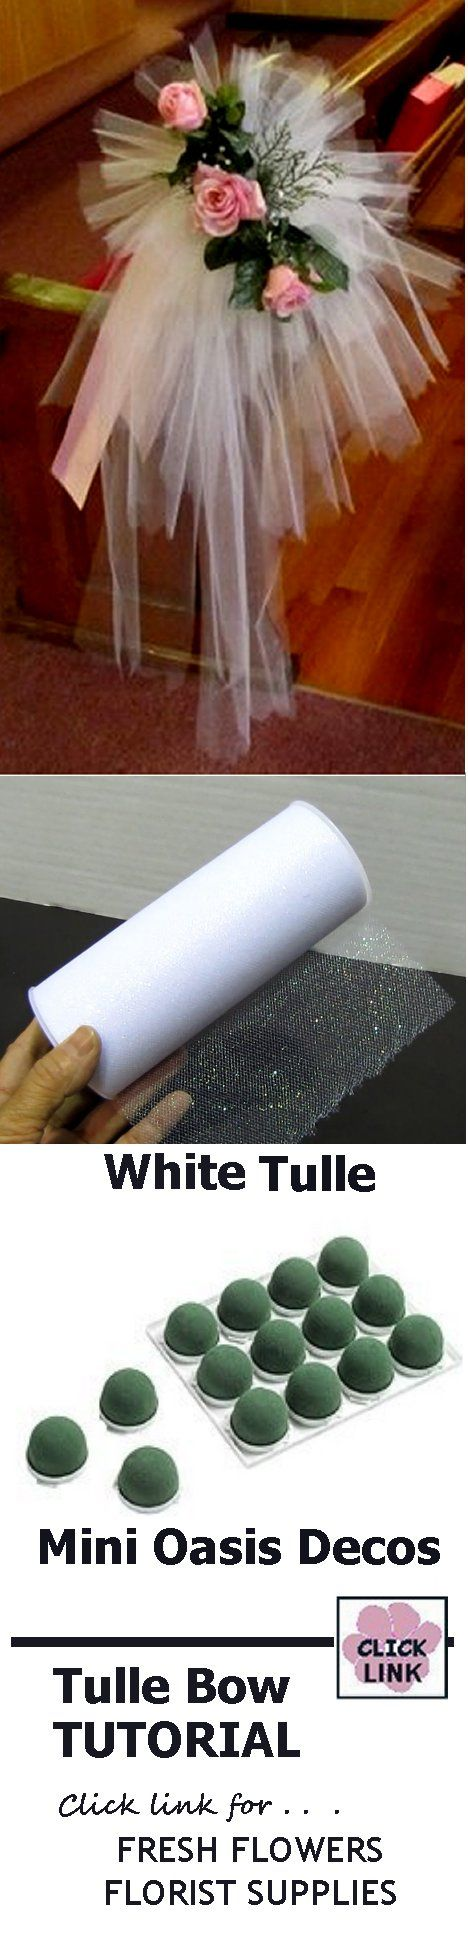 Tulle Bow Tutorial - Easy Photo Directions for Pew Bows    - Click Link for products needed